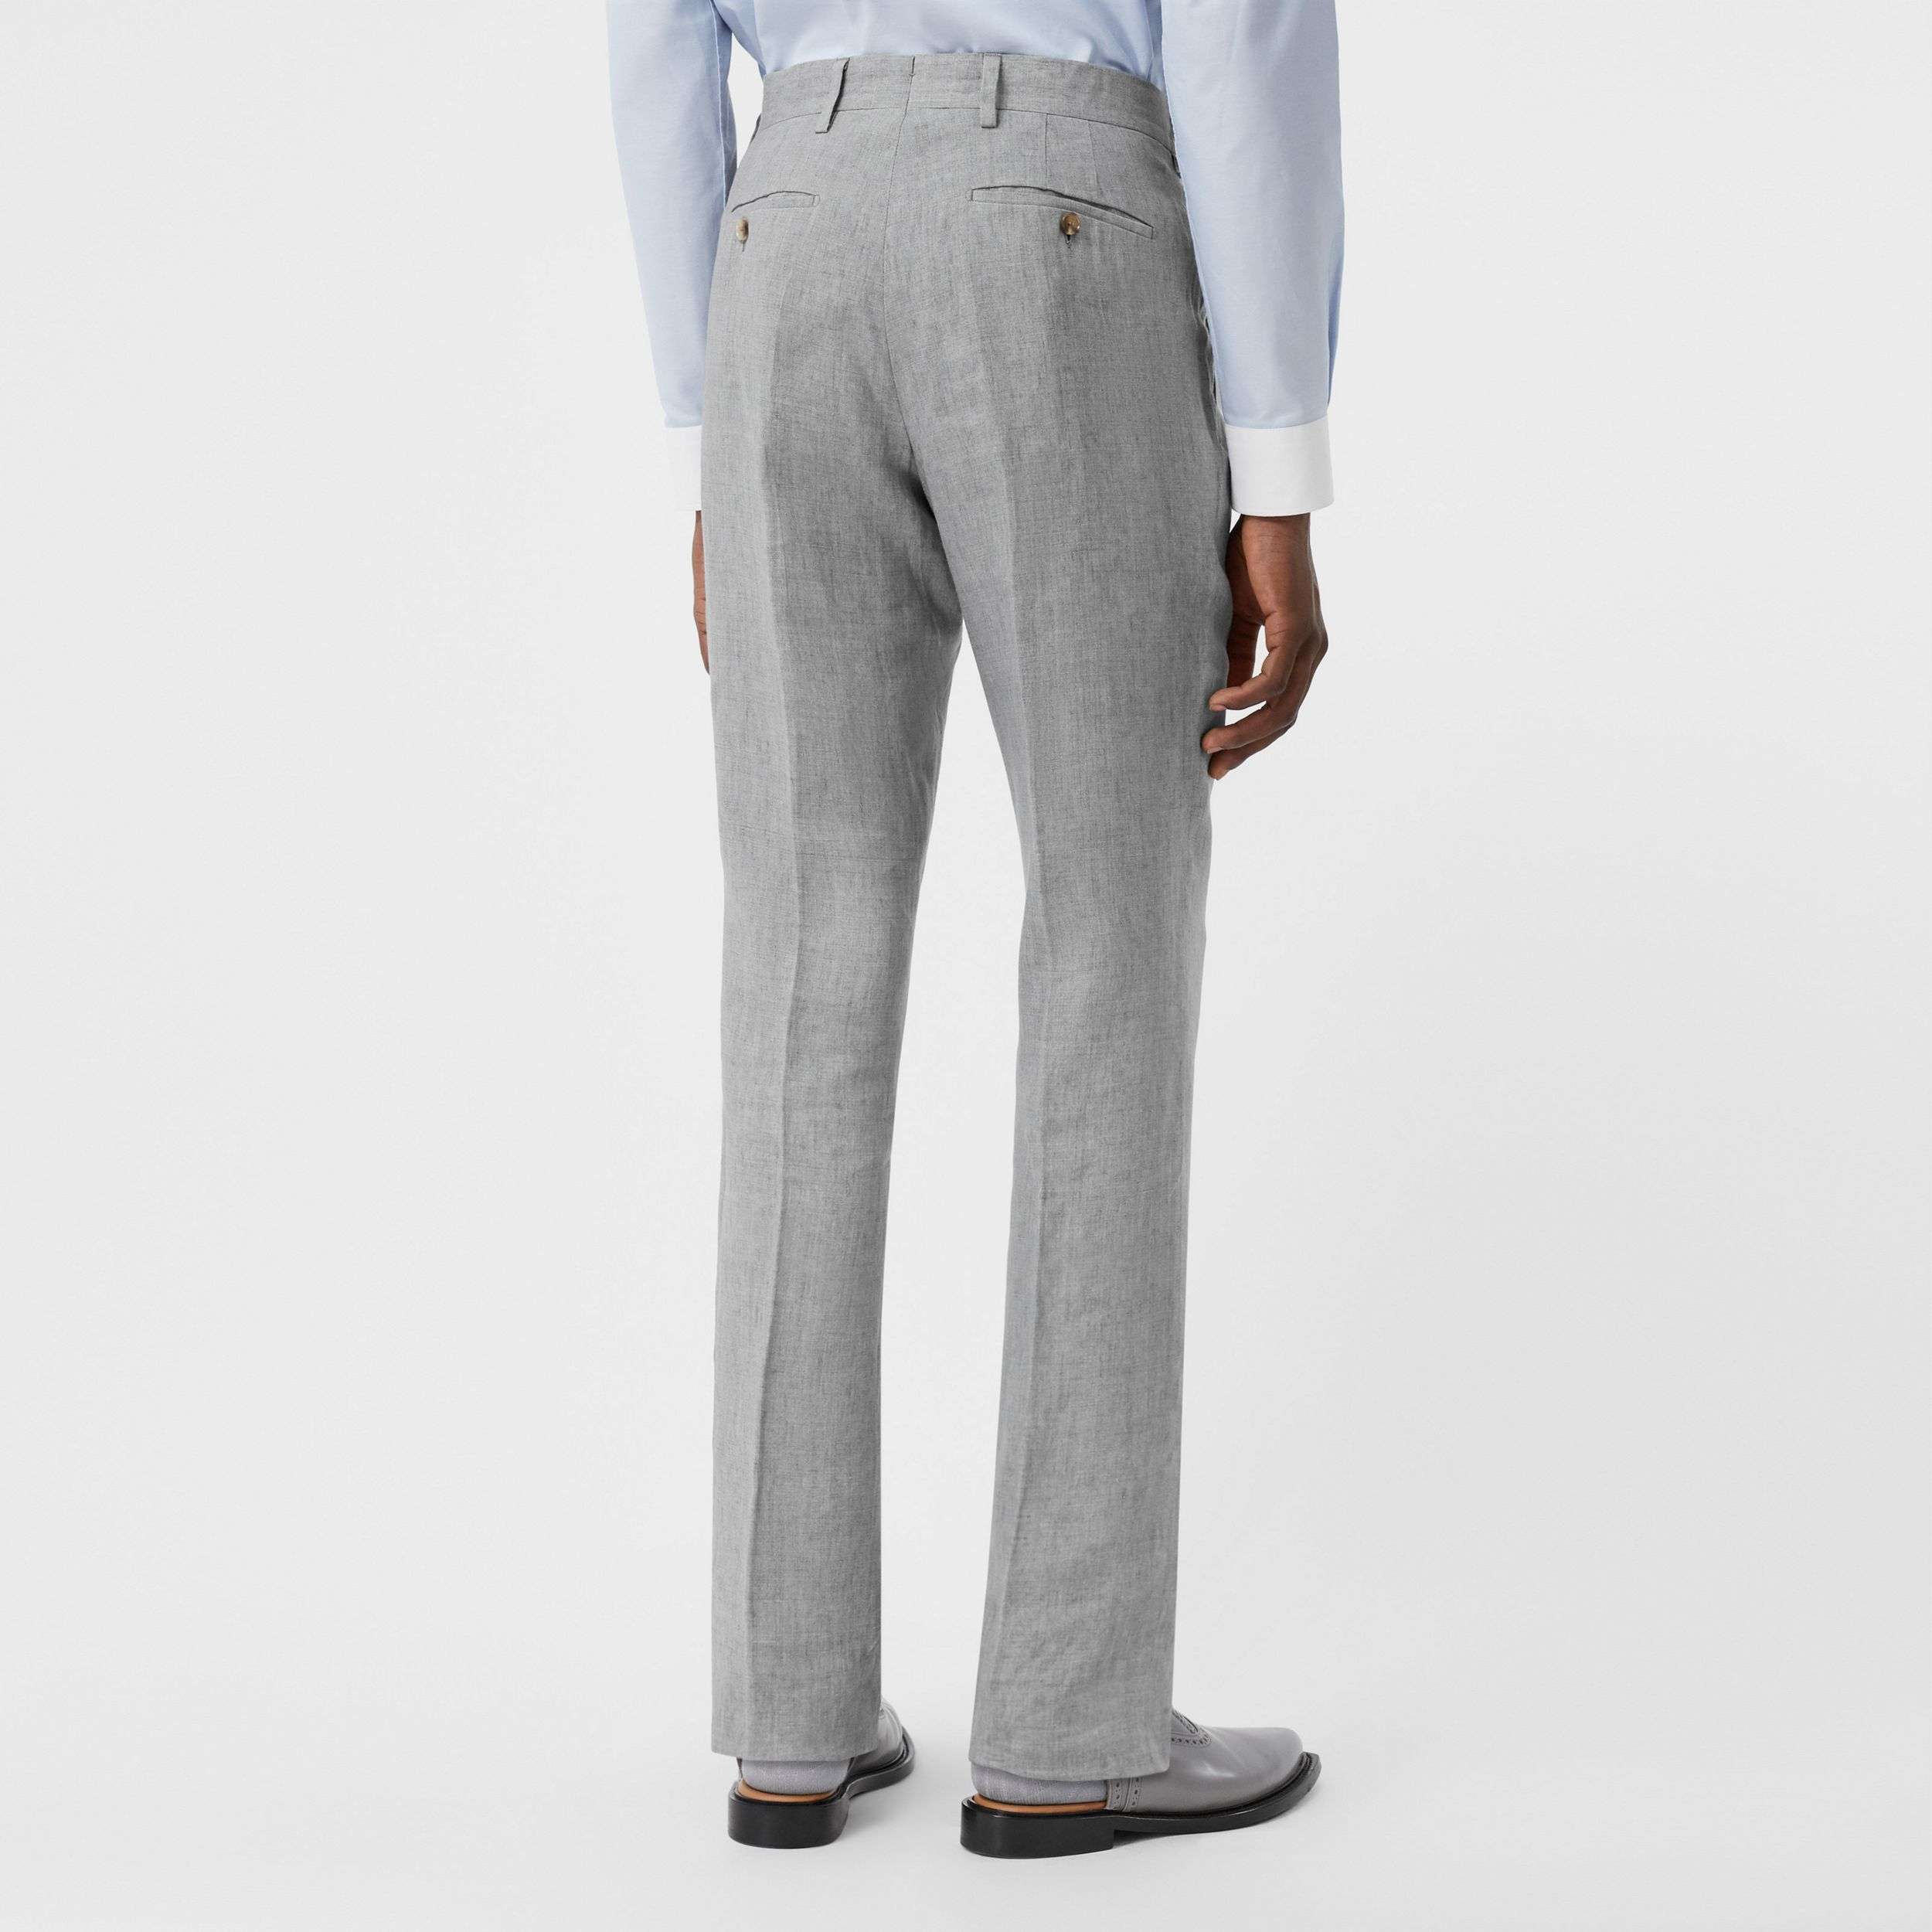 Classic Fit Linen Tailored Trousers in Heather Melange - Men | Burberry - 3